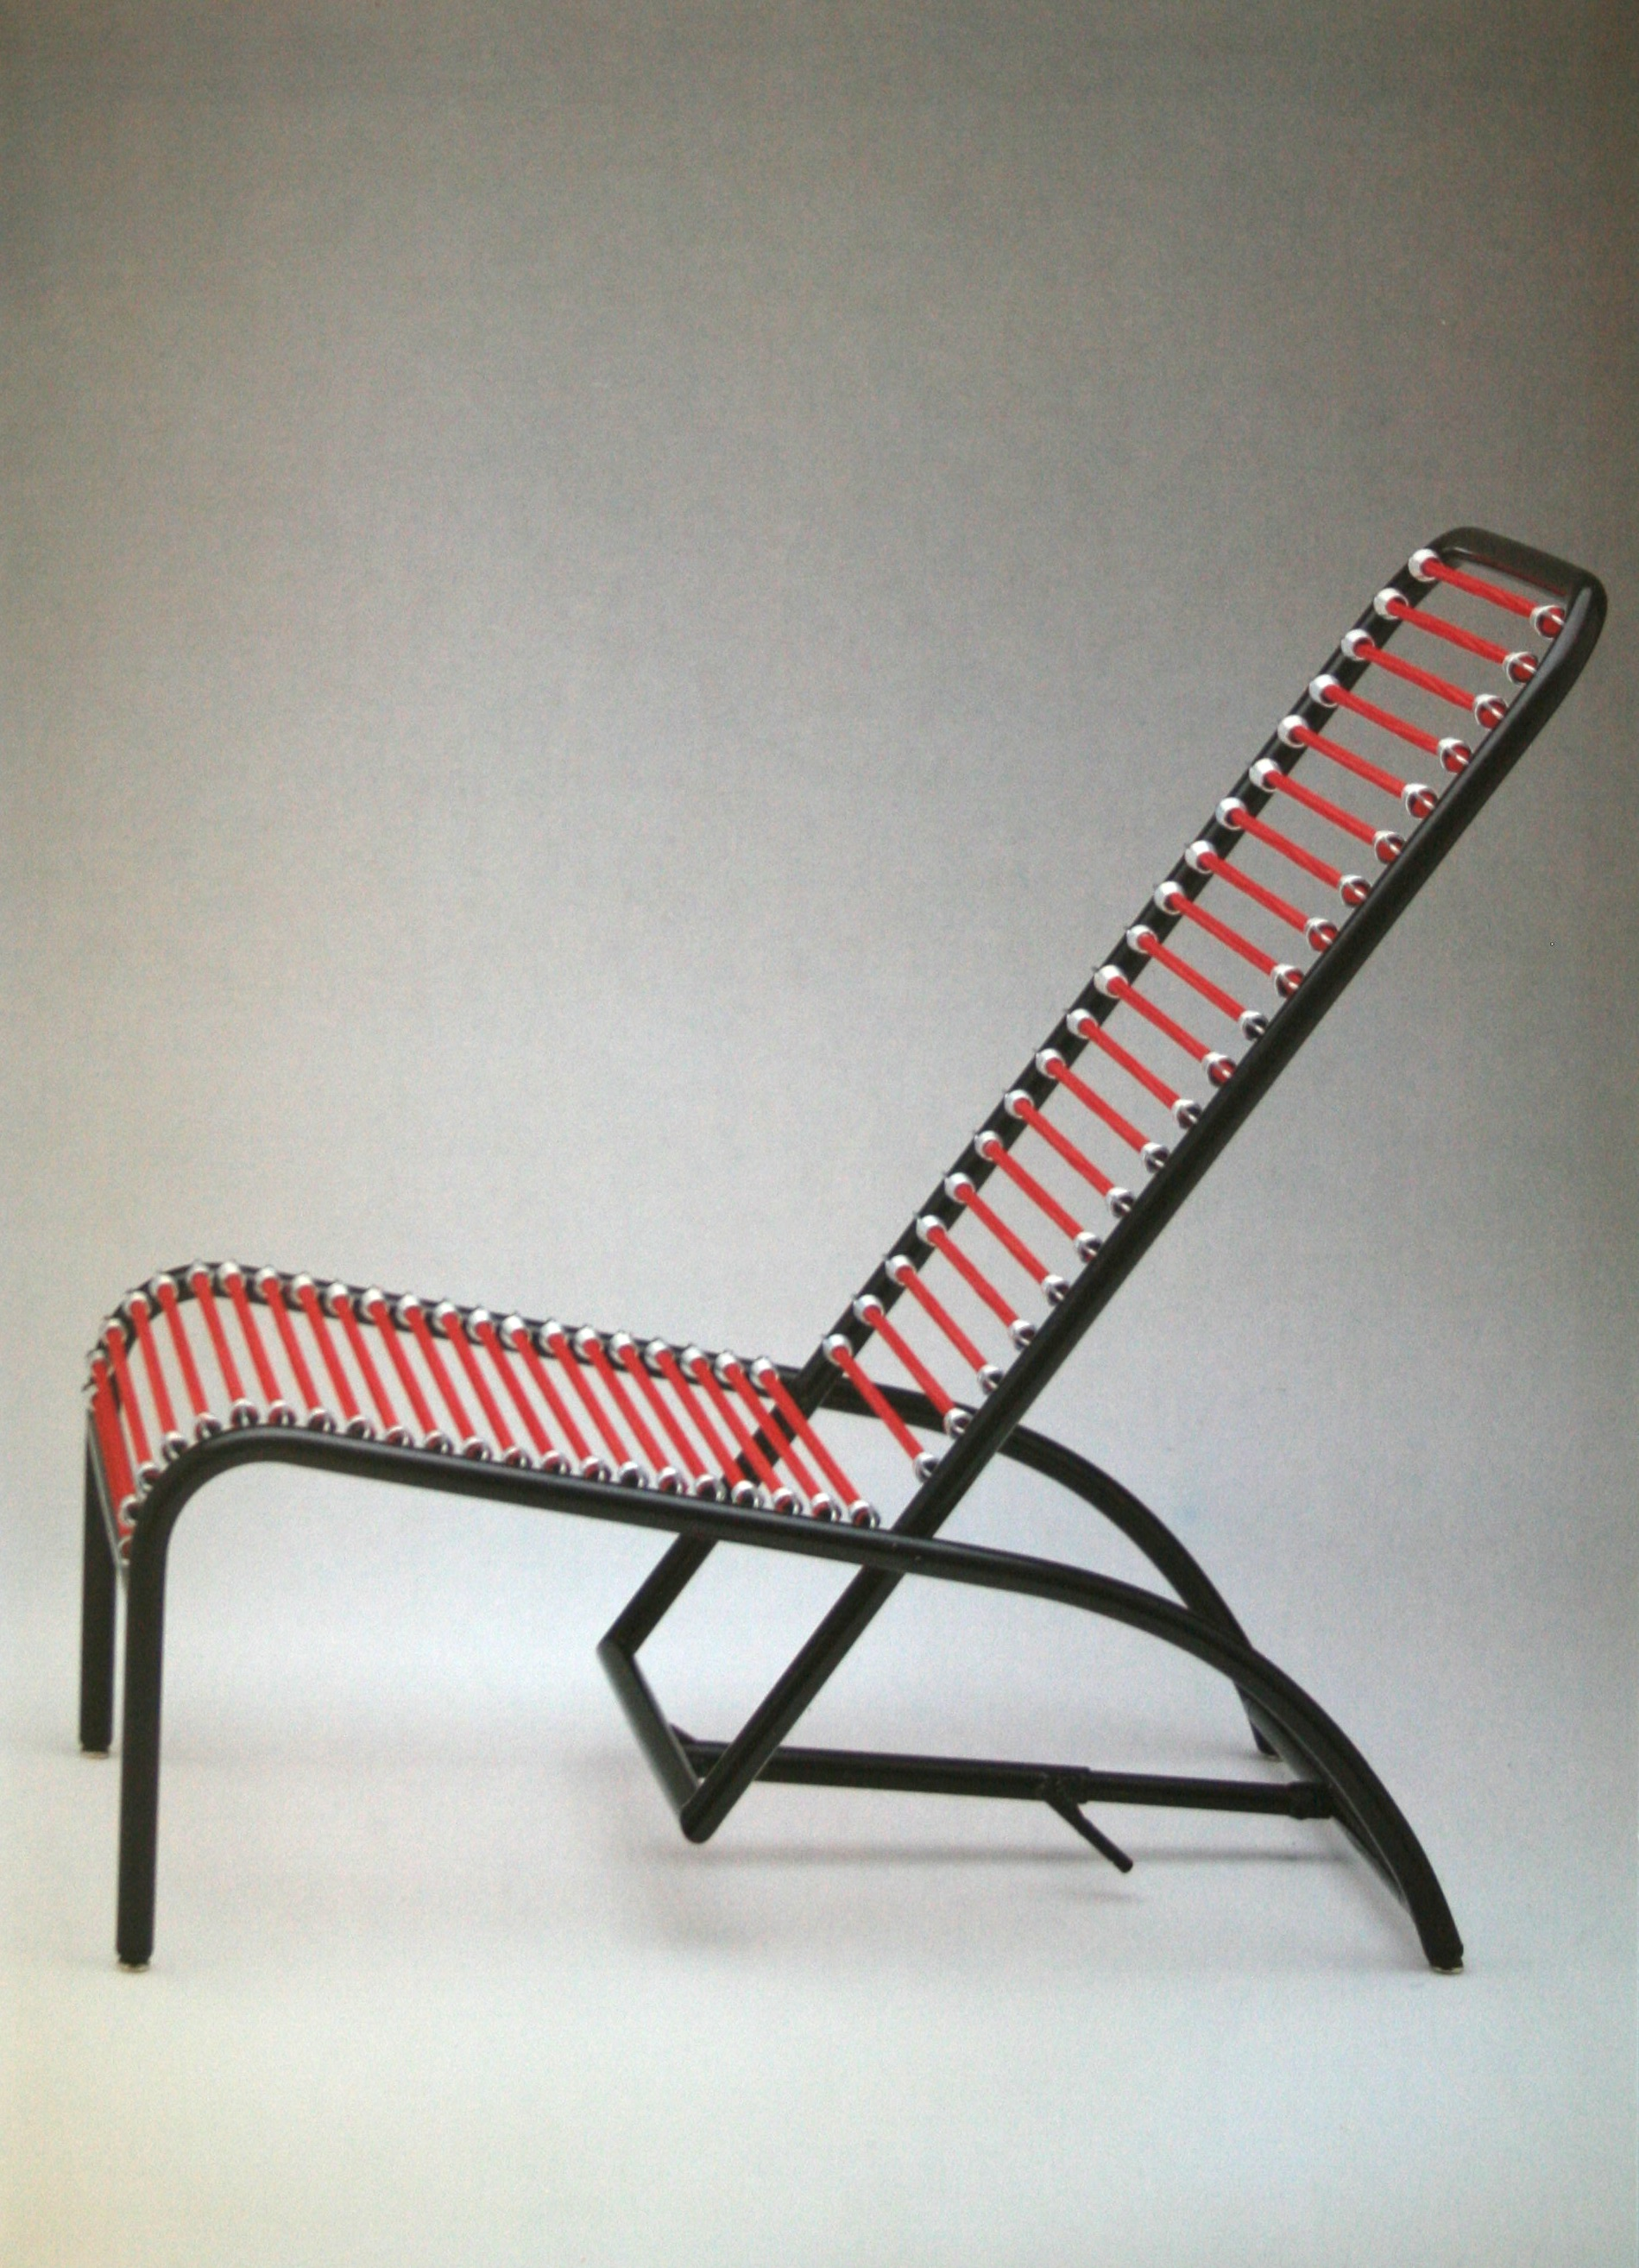 Ren   herbst  chaise lounge  1930